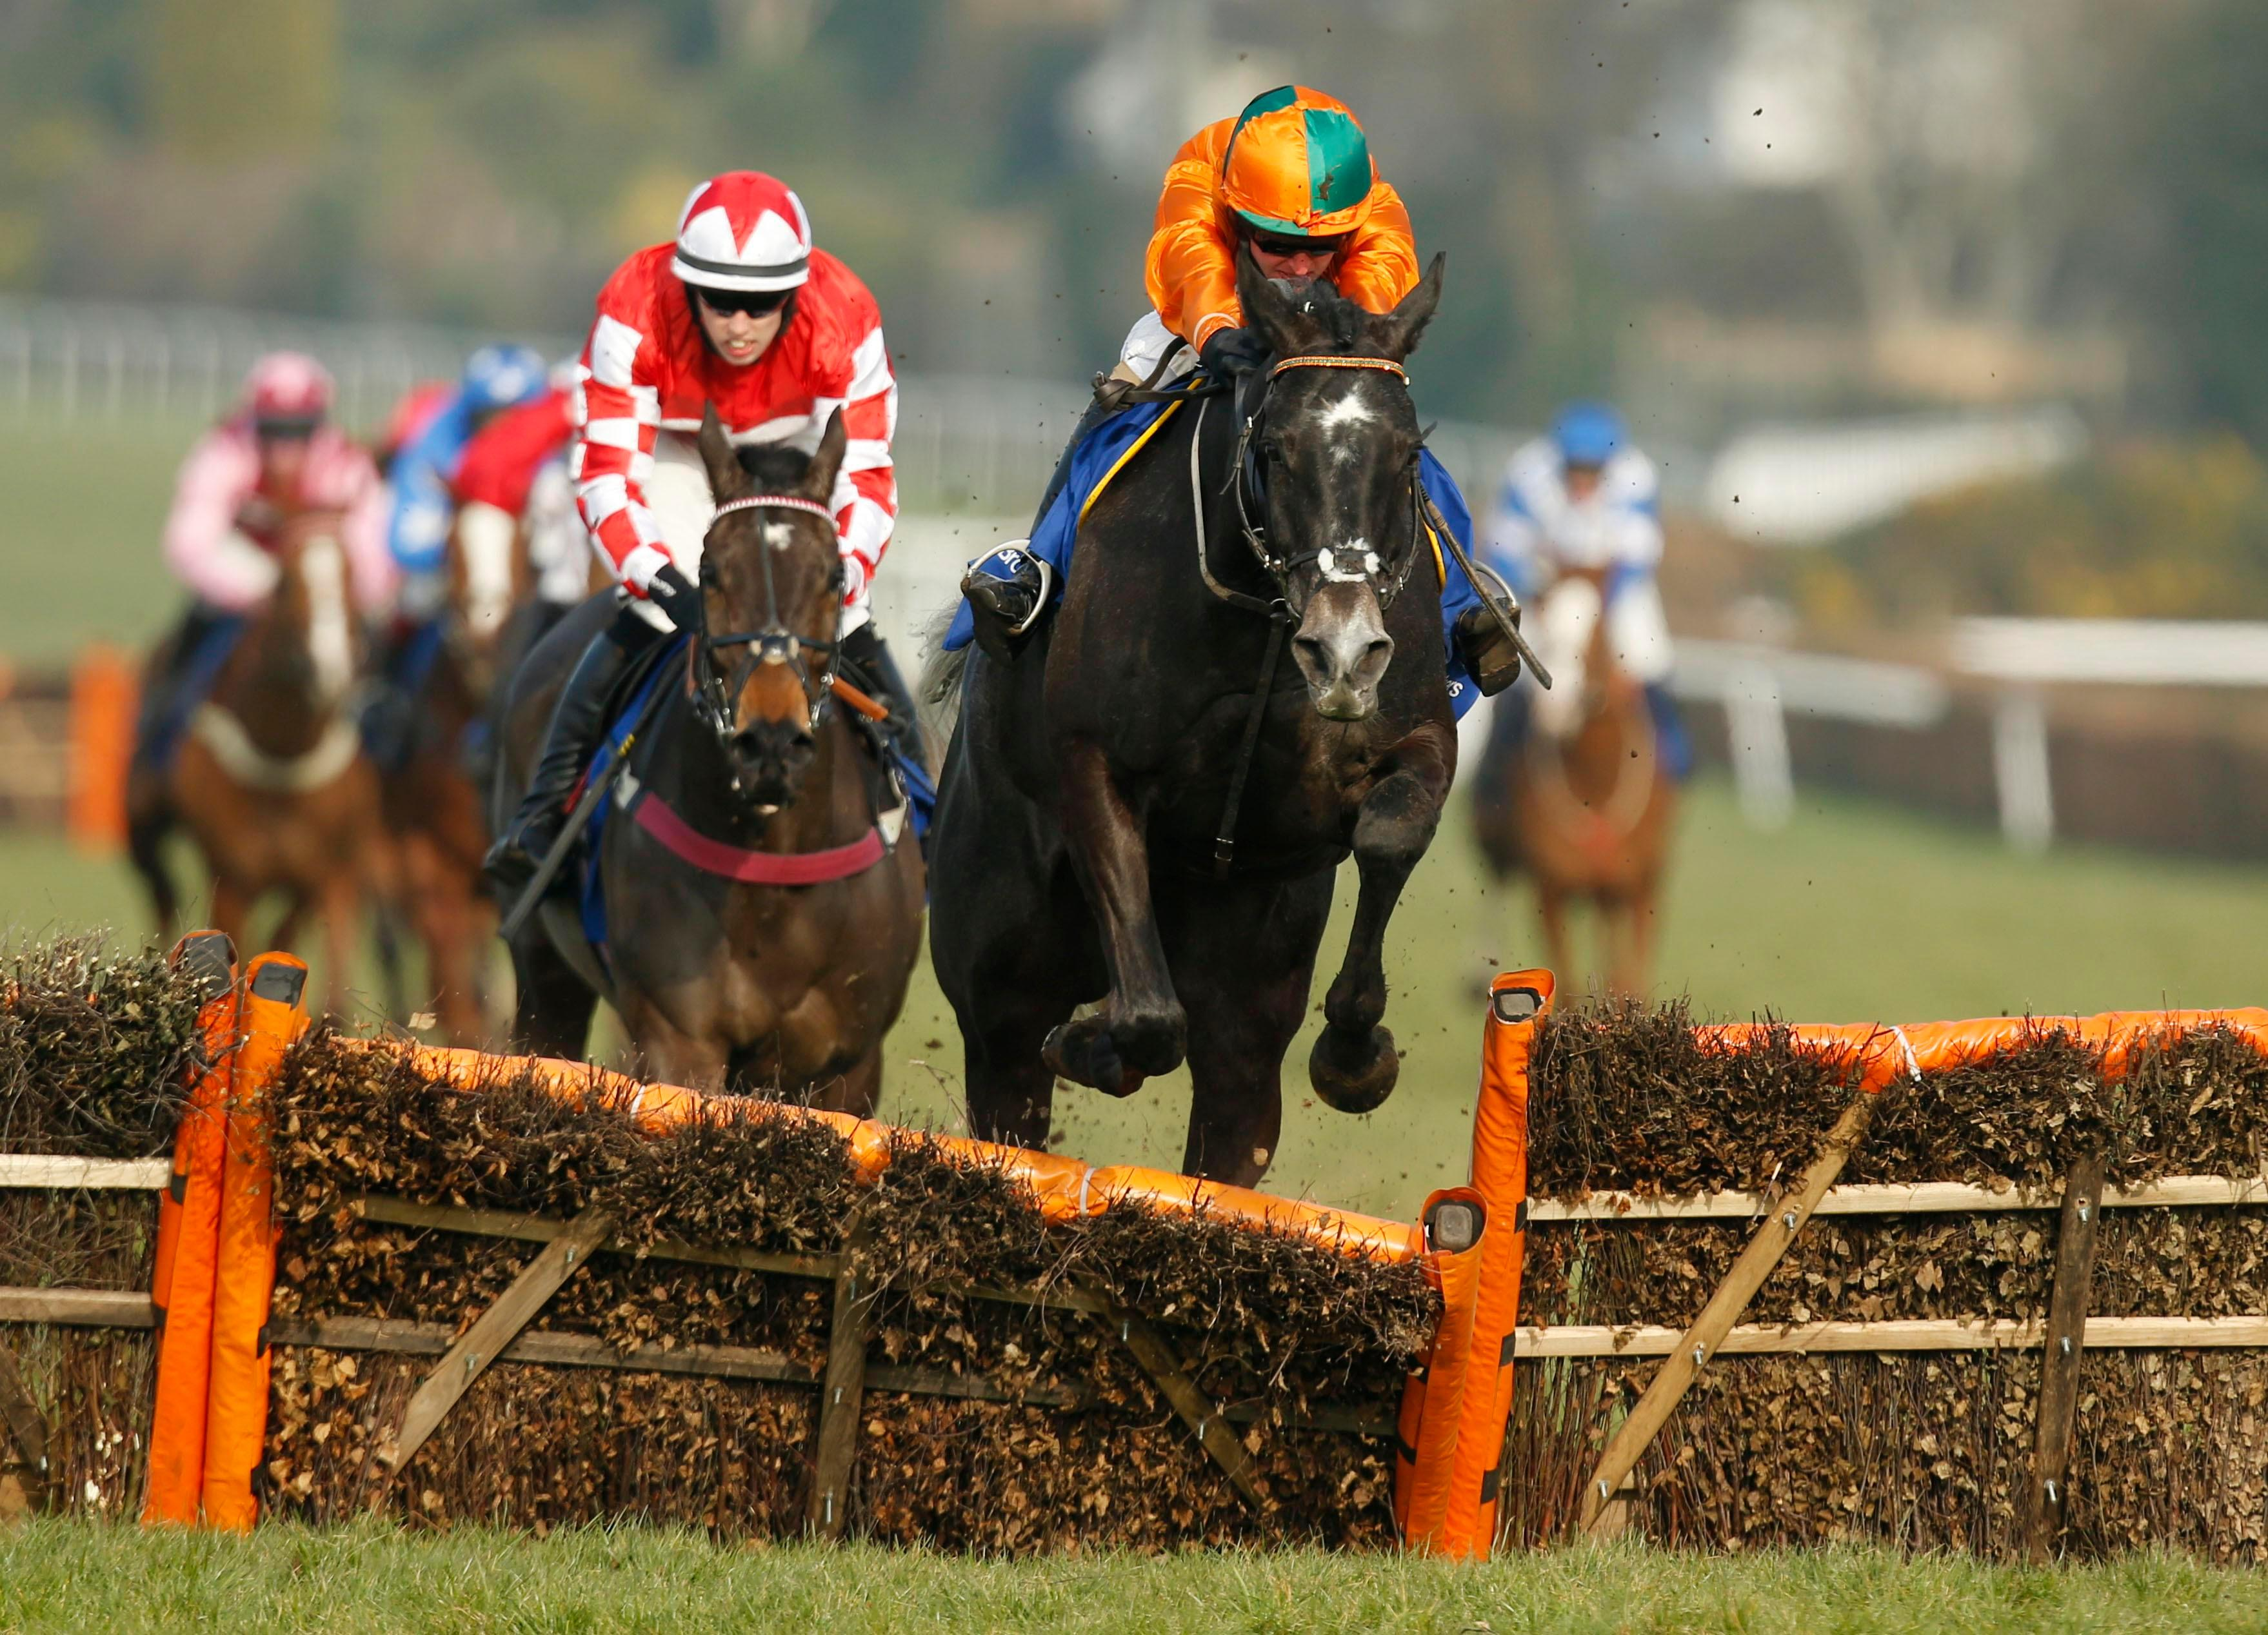 Latest horse racing results: Who won the 2.25 at Sandown live on ITV today?